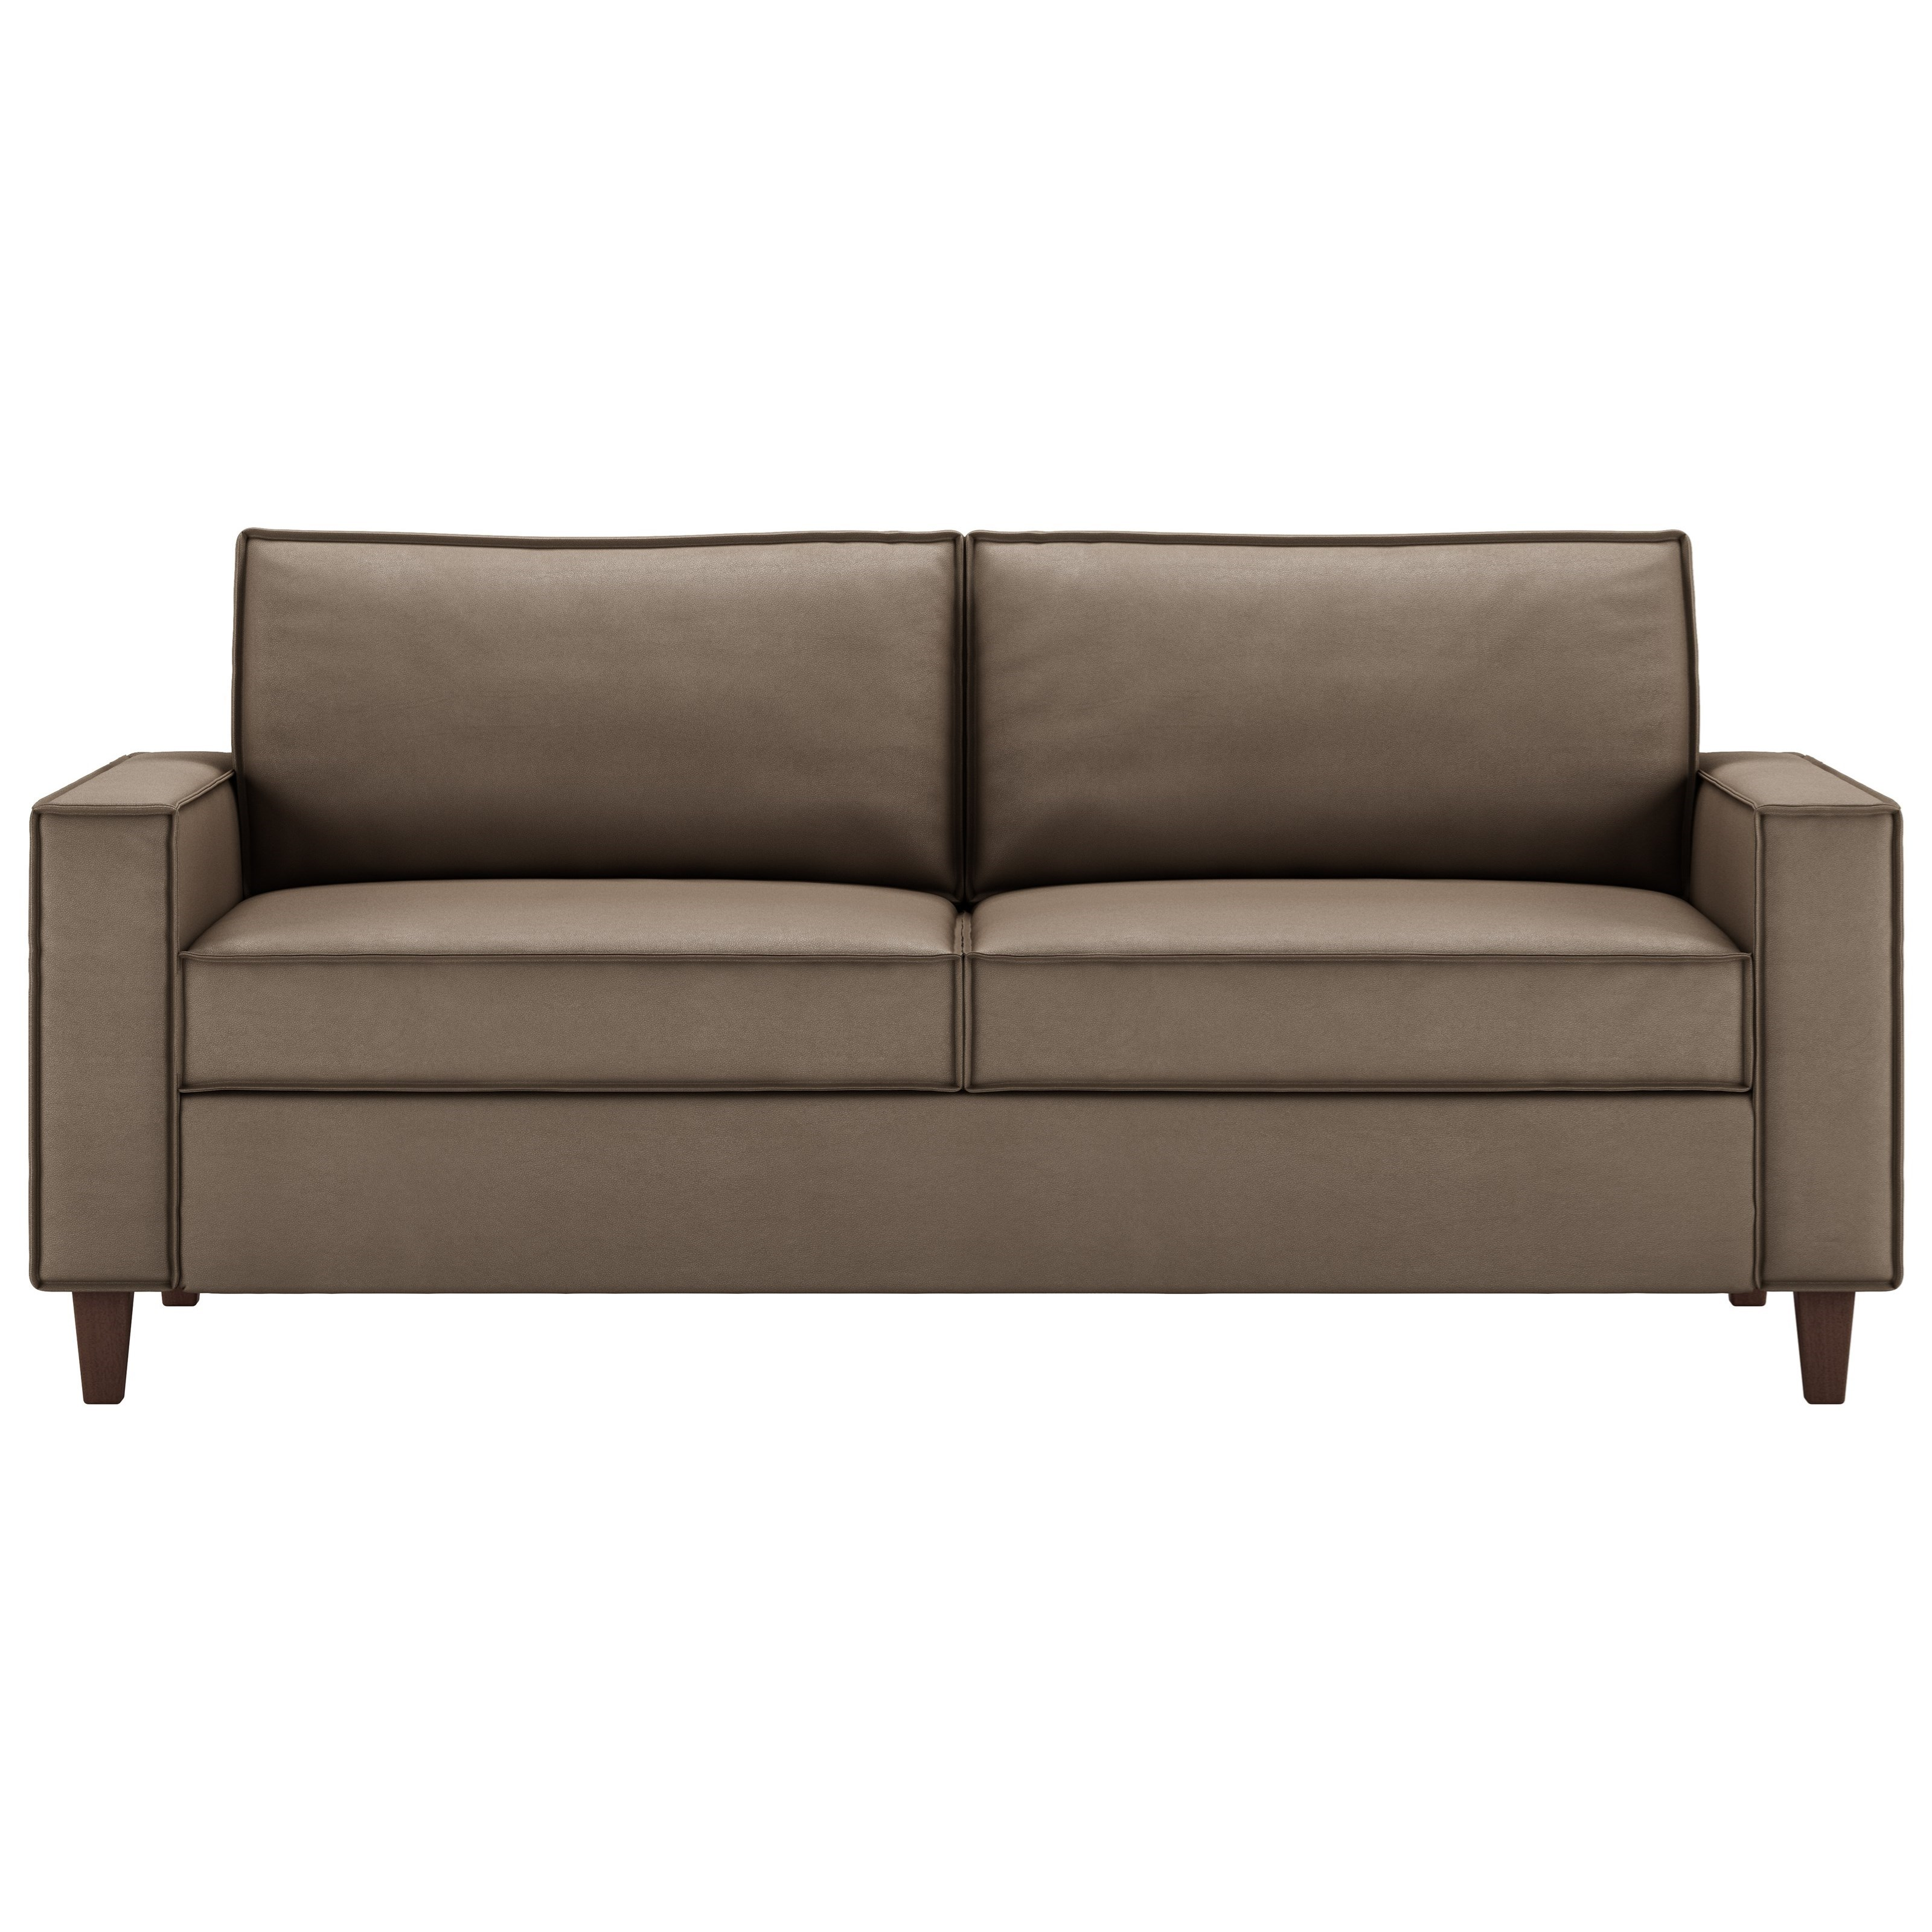 American Leather Mitchell Contemporary Queen Large Sleeper